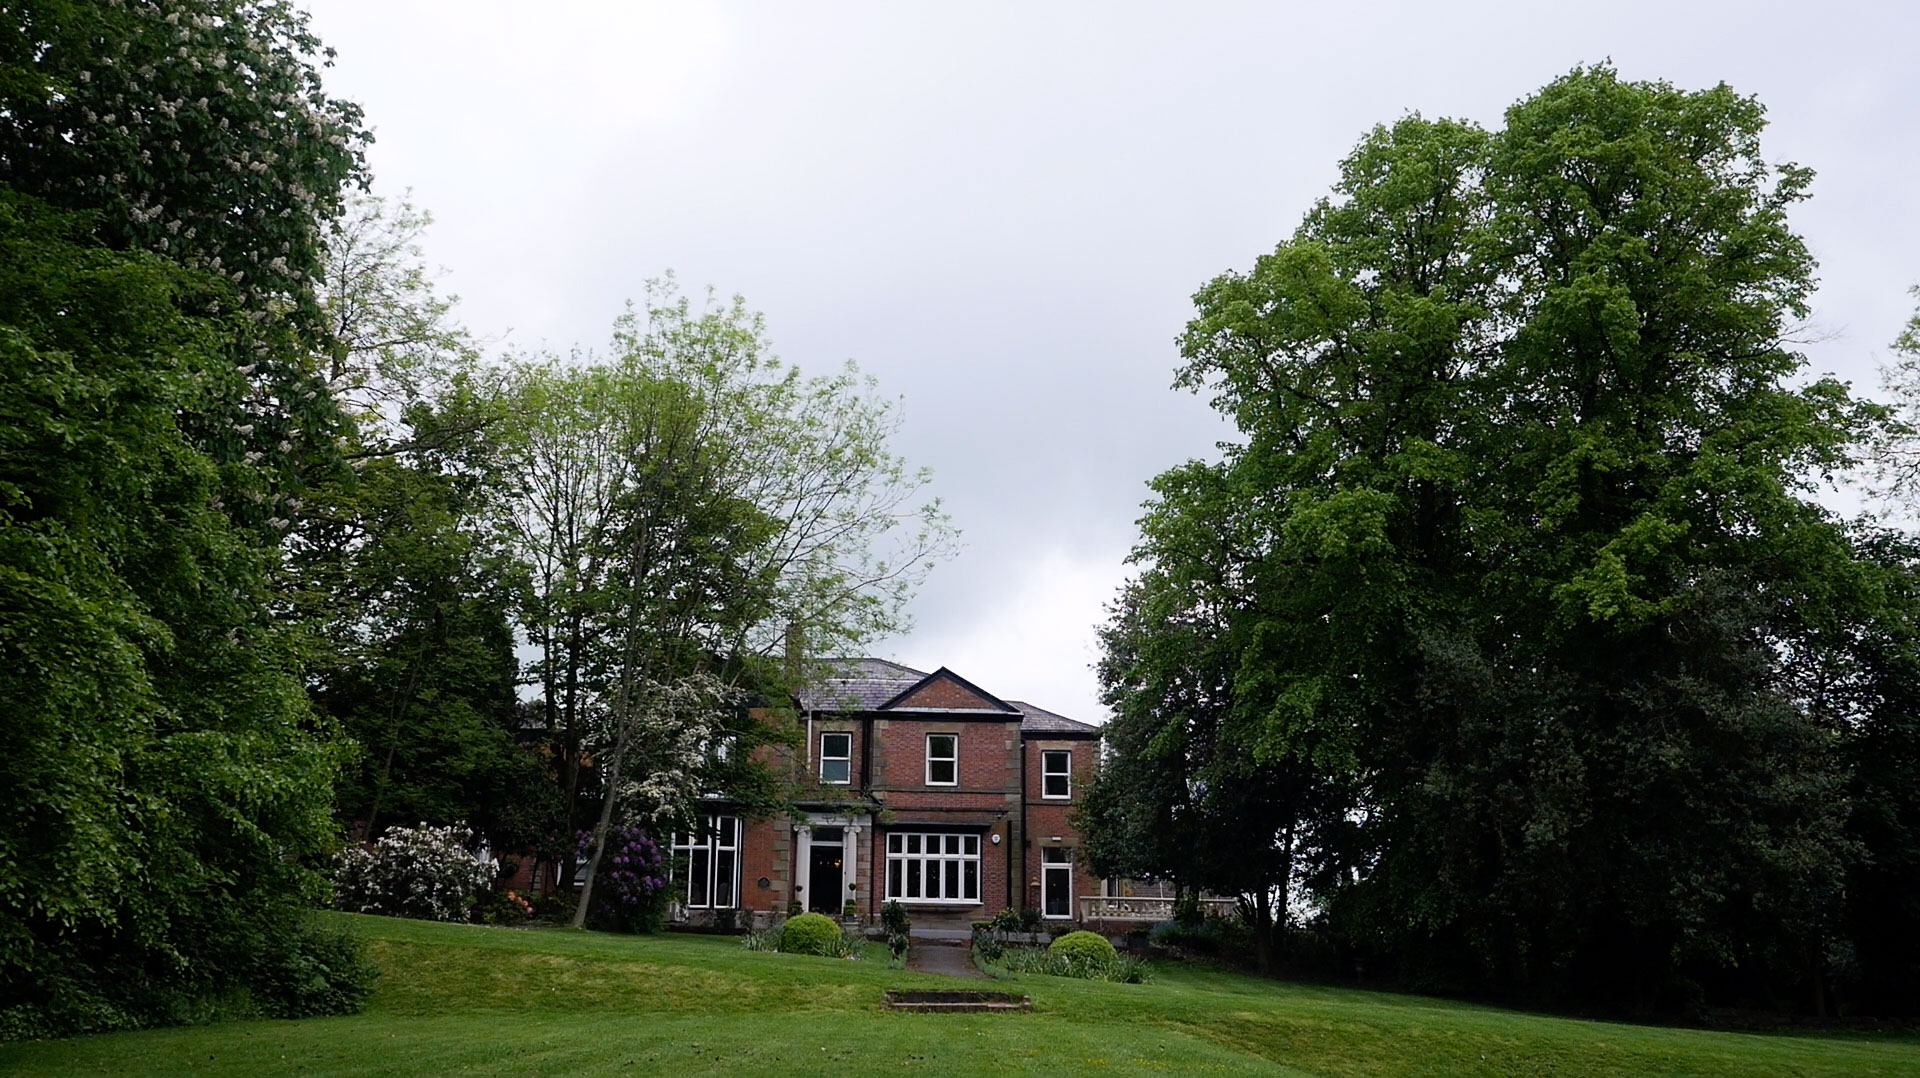 The North West Wedding Venue, Ashfield House, was the backdrop for Jennifer and Luke's wedding video.